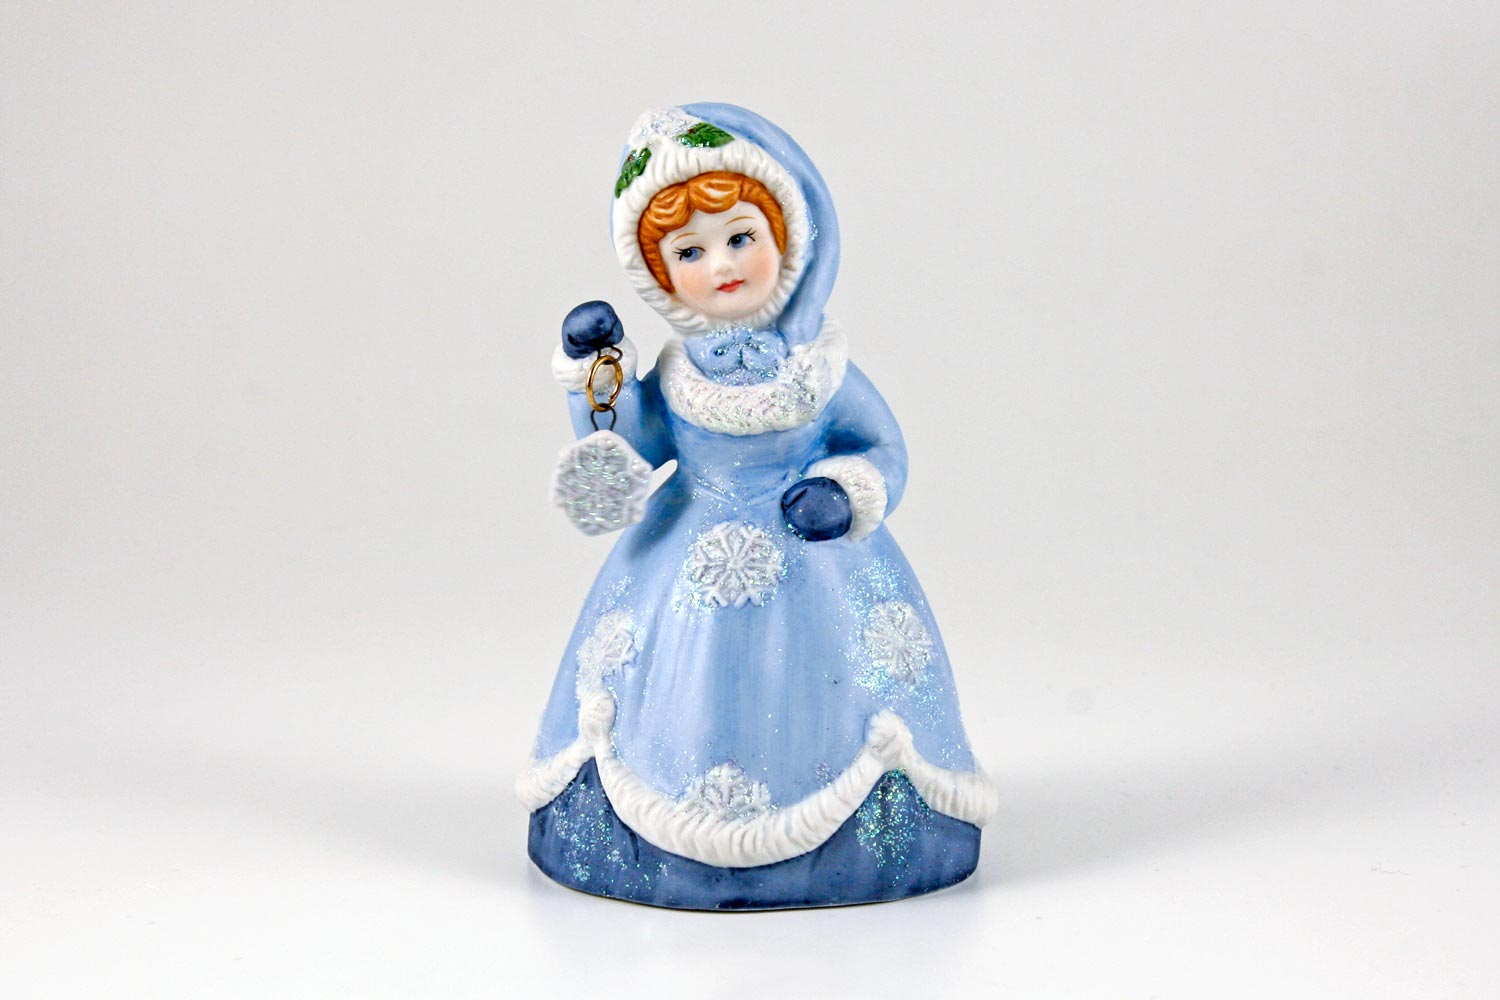 Winter-Maiden-Belles-Snow.jpg